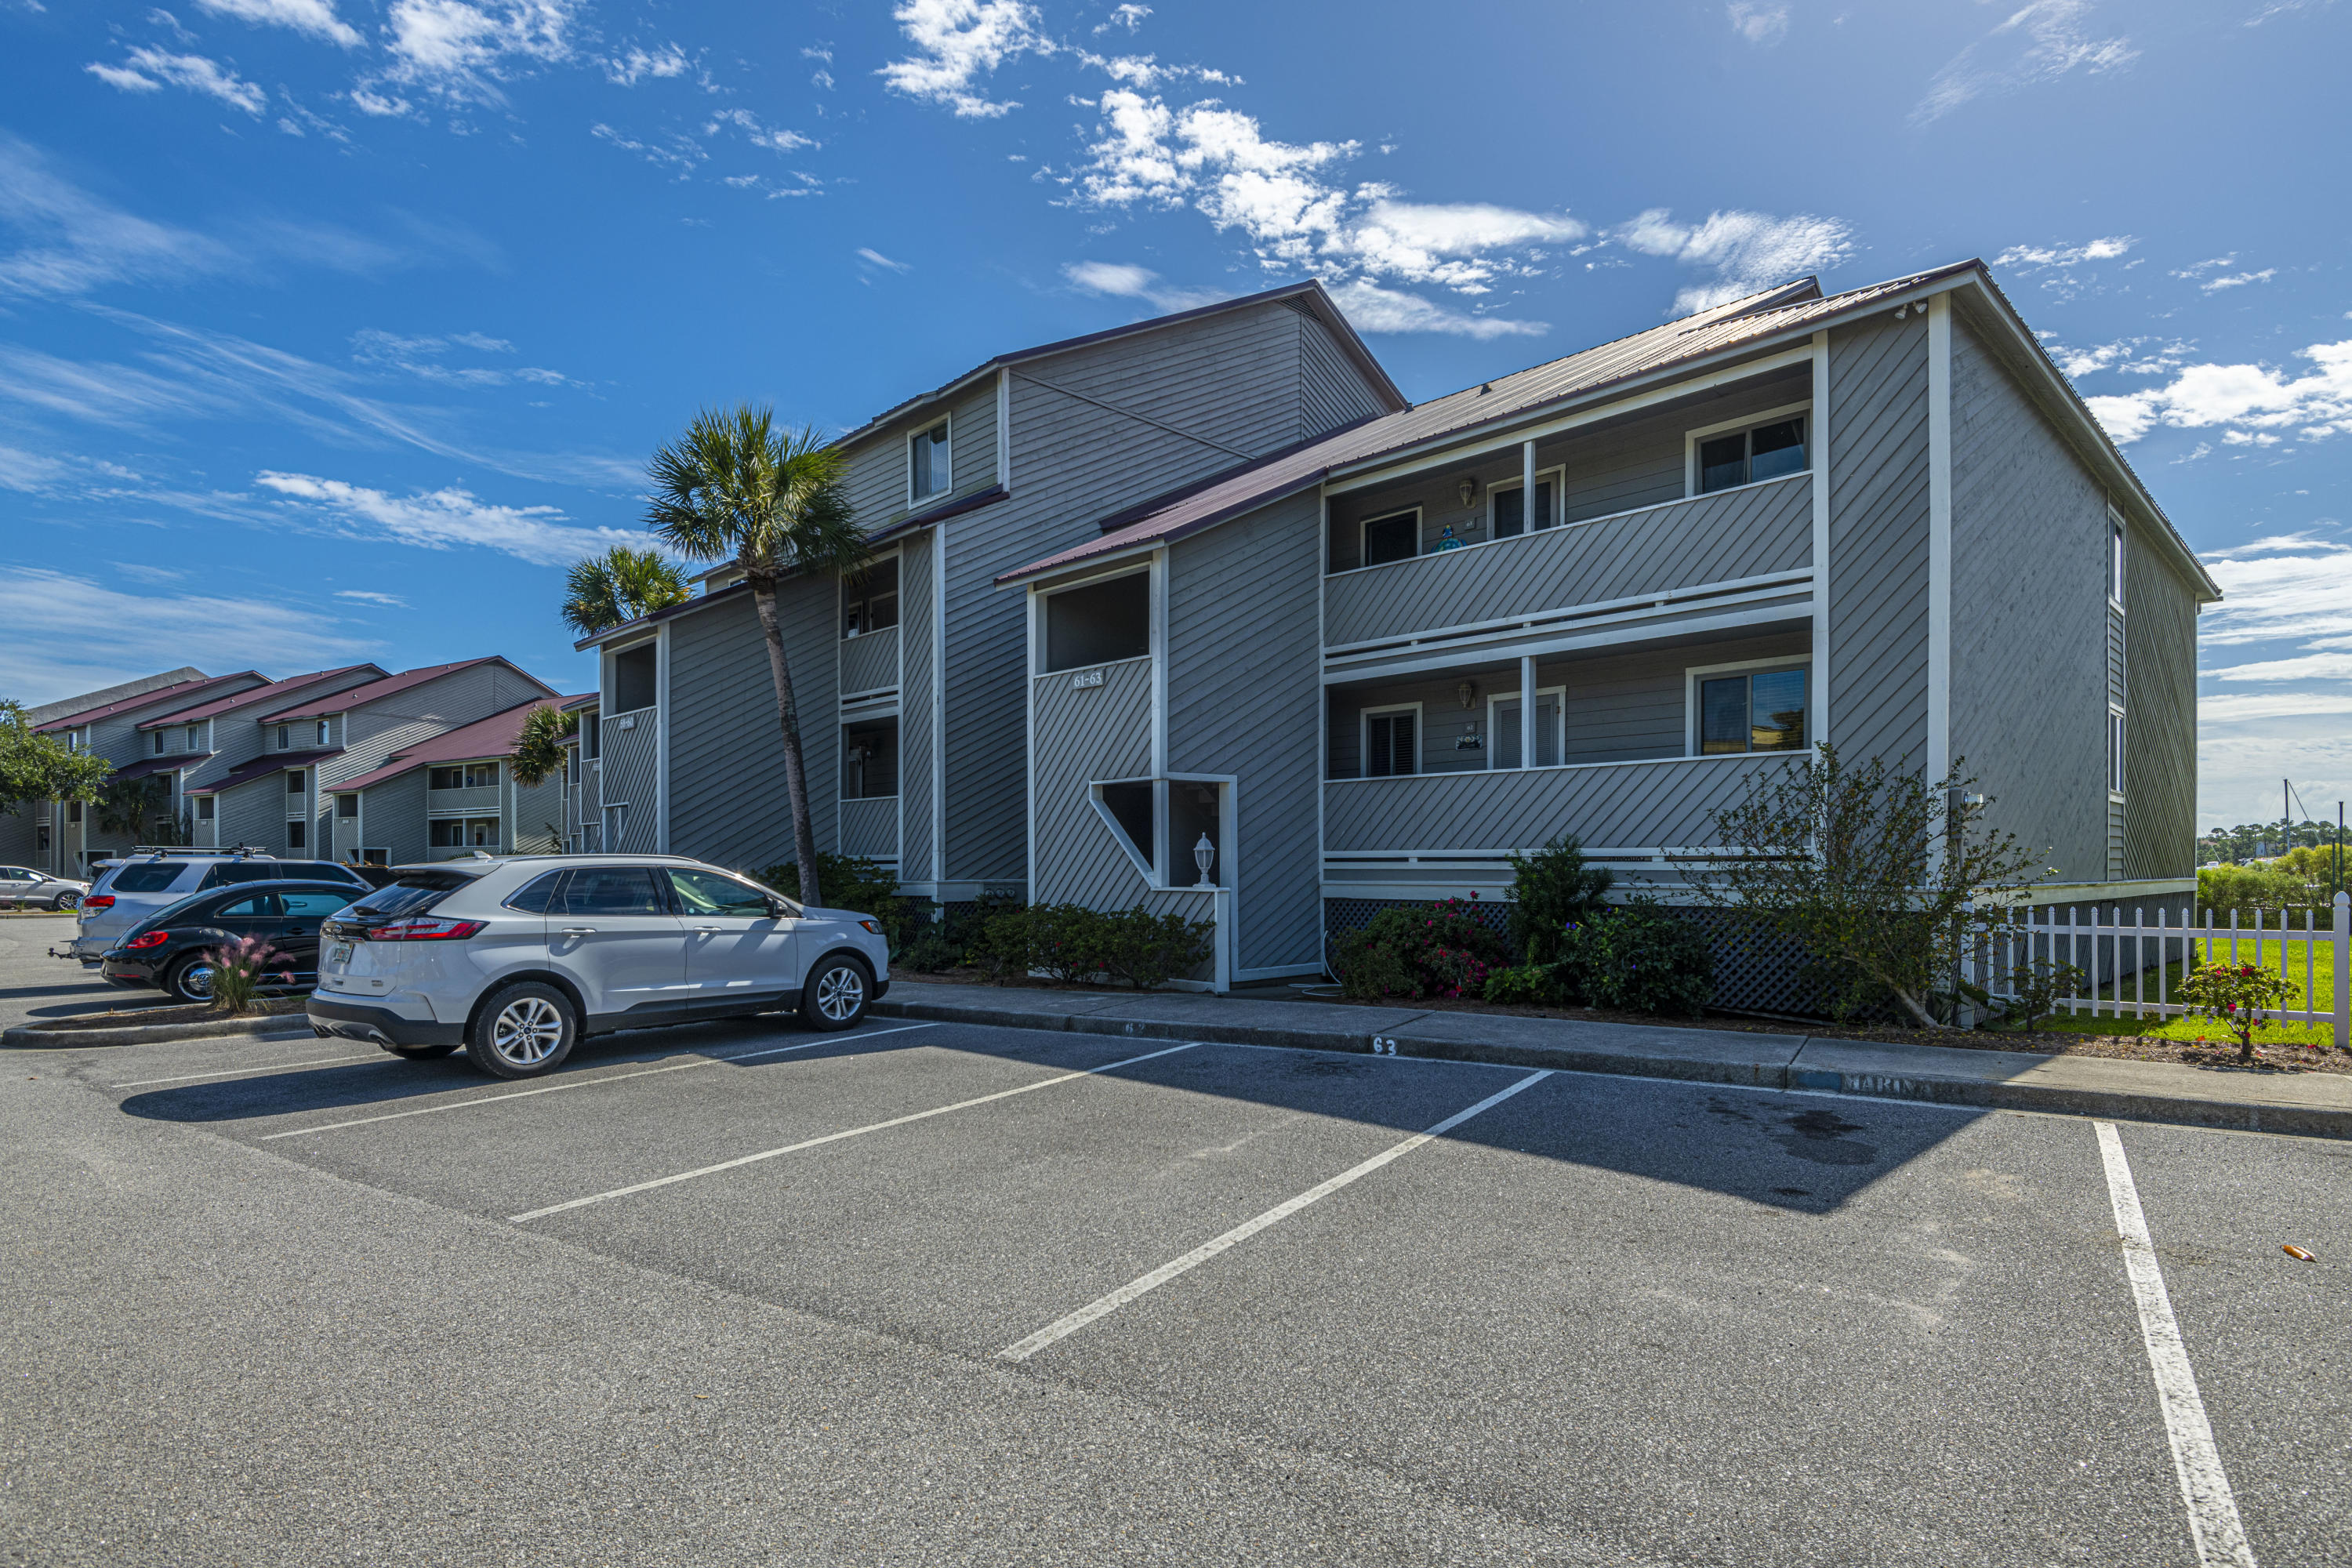 Mariners Cay Homes For Sale - 60 Mariners Cay, Folly Beach, SC - 45